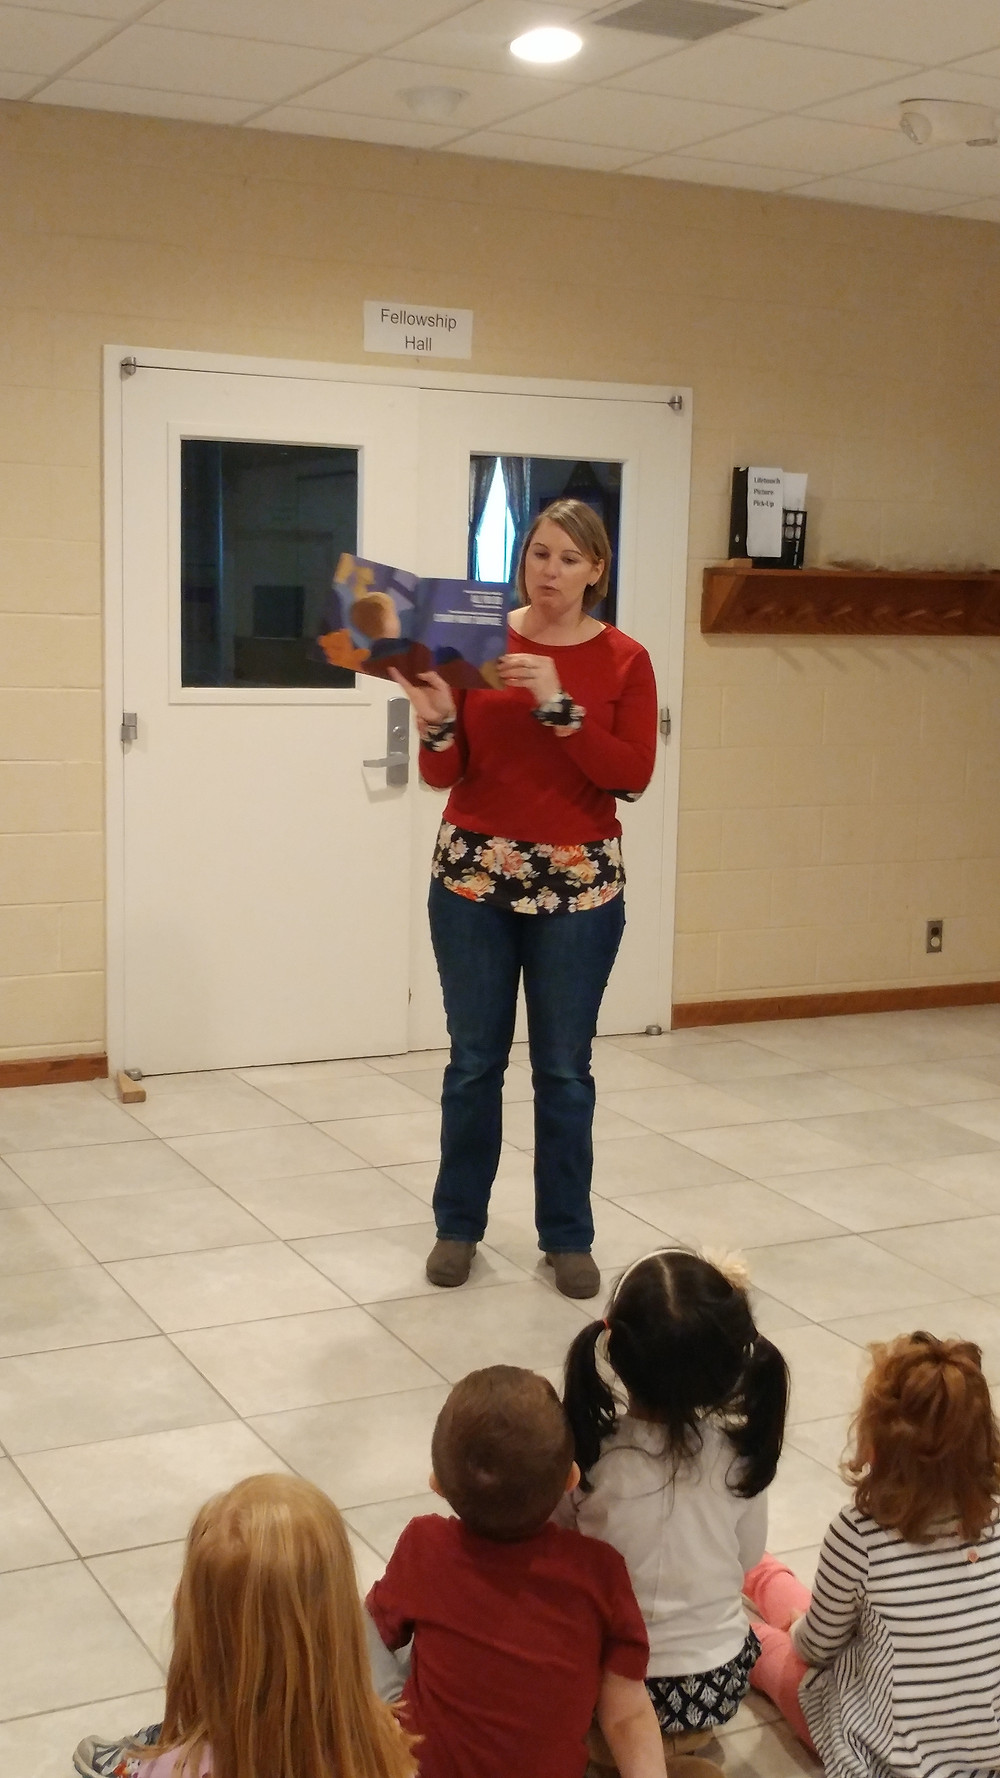 Children's author Lindsay C. Barry reading her book to children